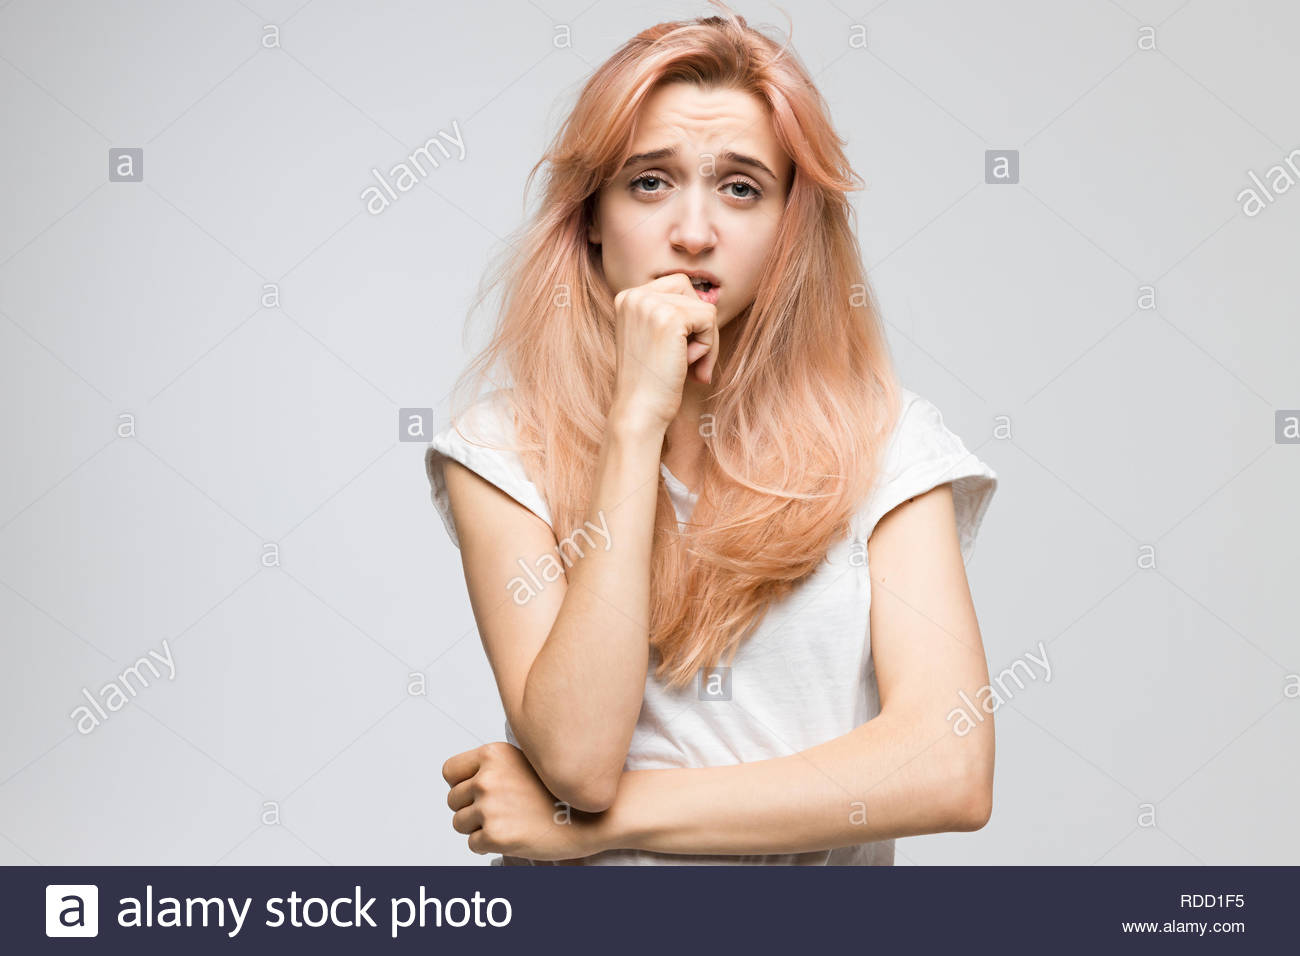 Cropped studio portrait of cute blonde girl in white t-shirt looks with bewilderment and disappointment/closed posture, angry. - Stock Image